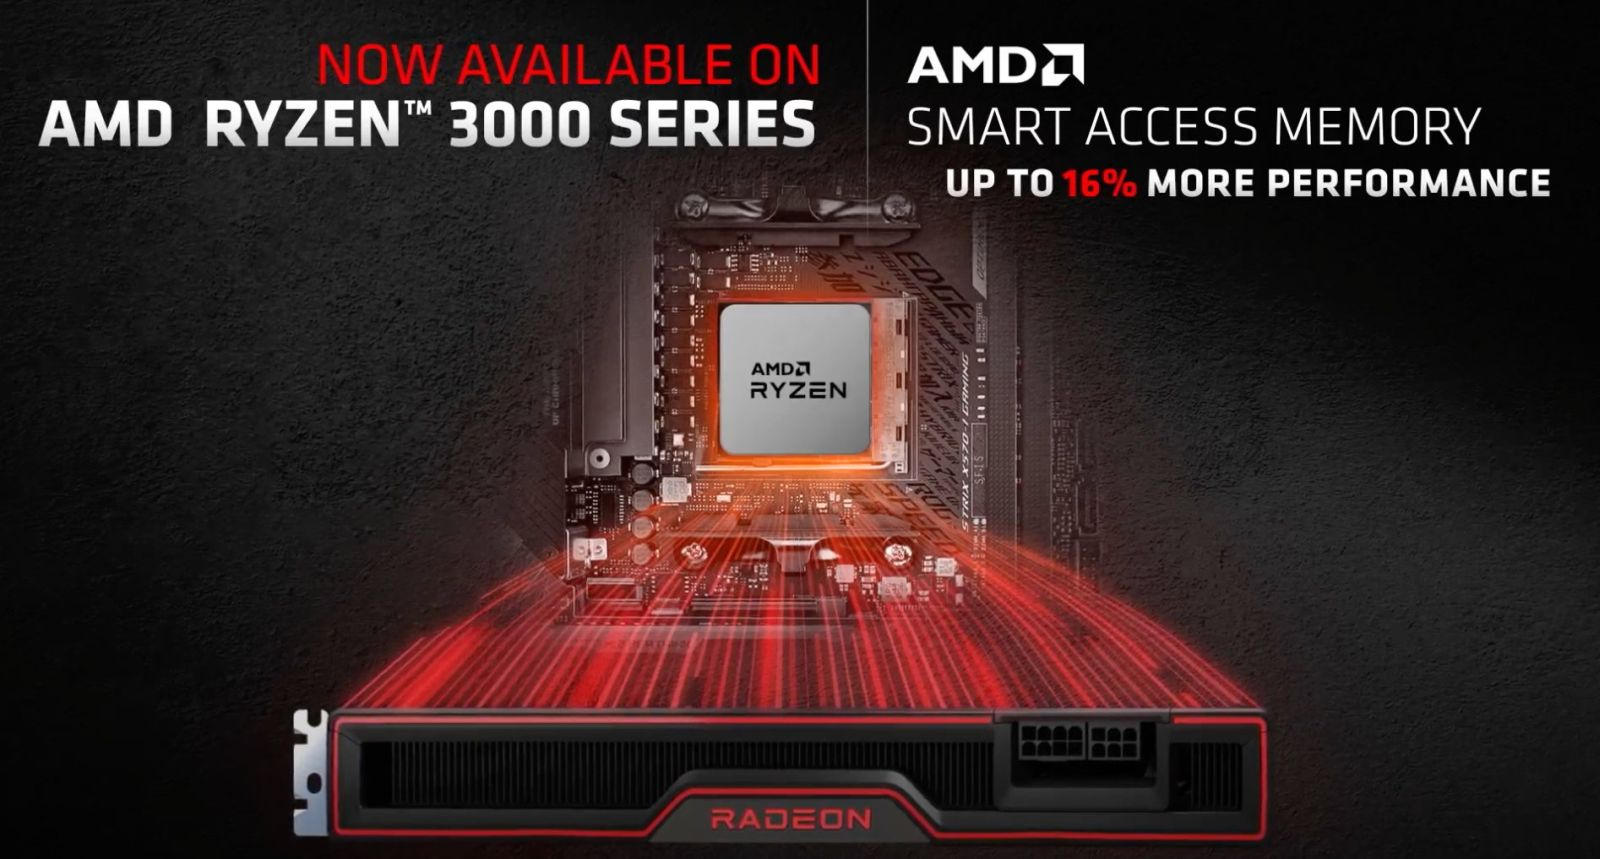 Технология Smart Access Memory (Resizable Bar) добралась до ЦП Ryzen 3000